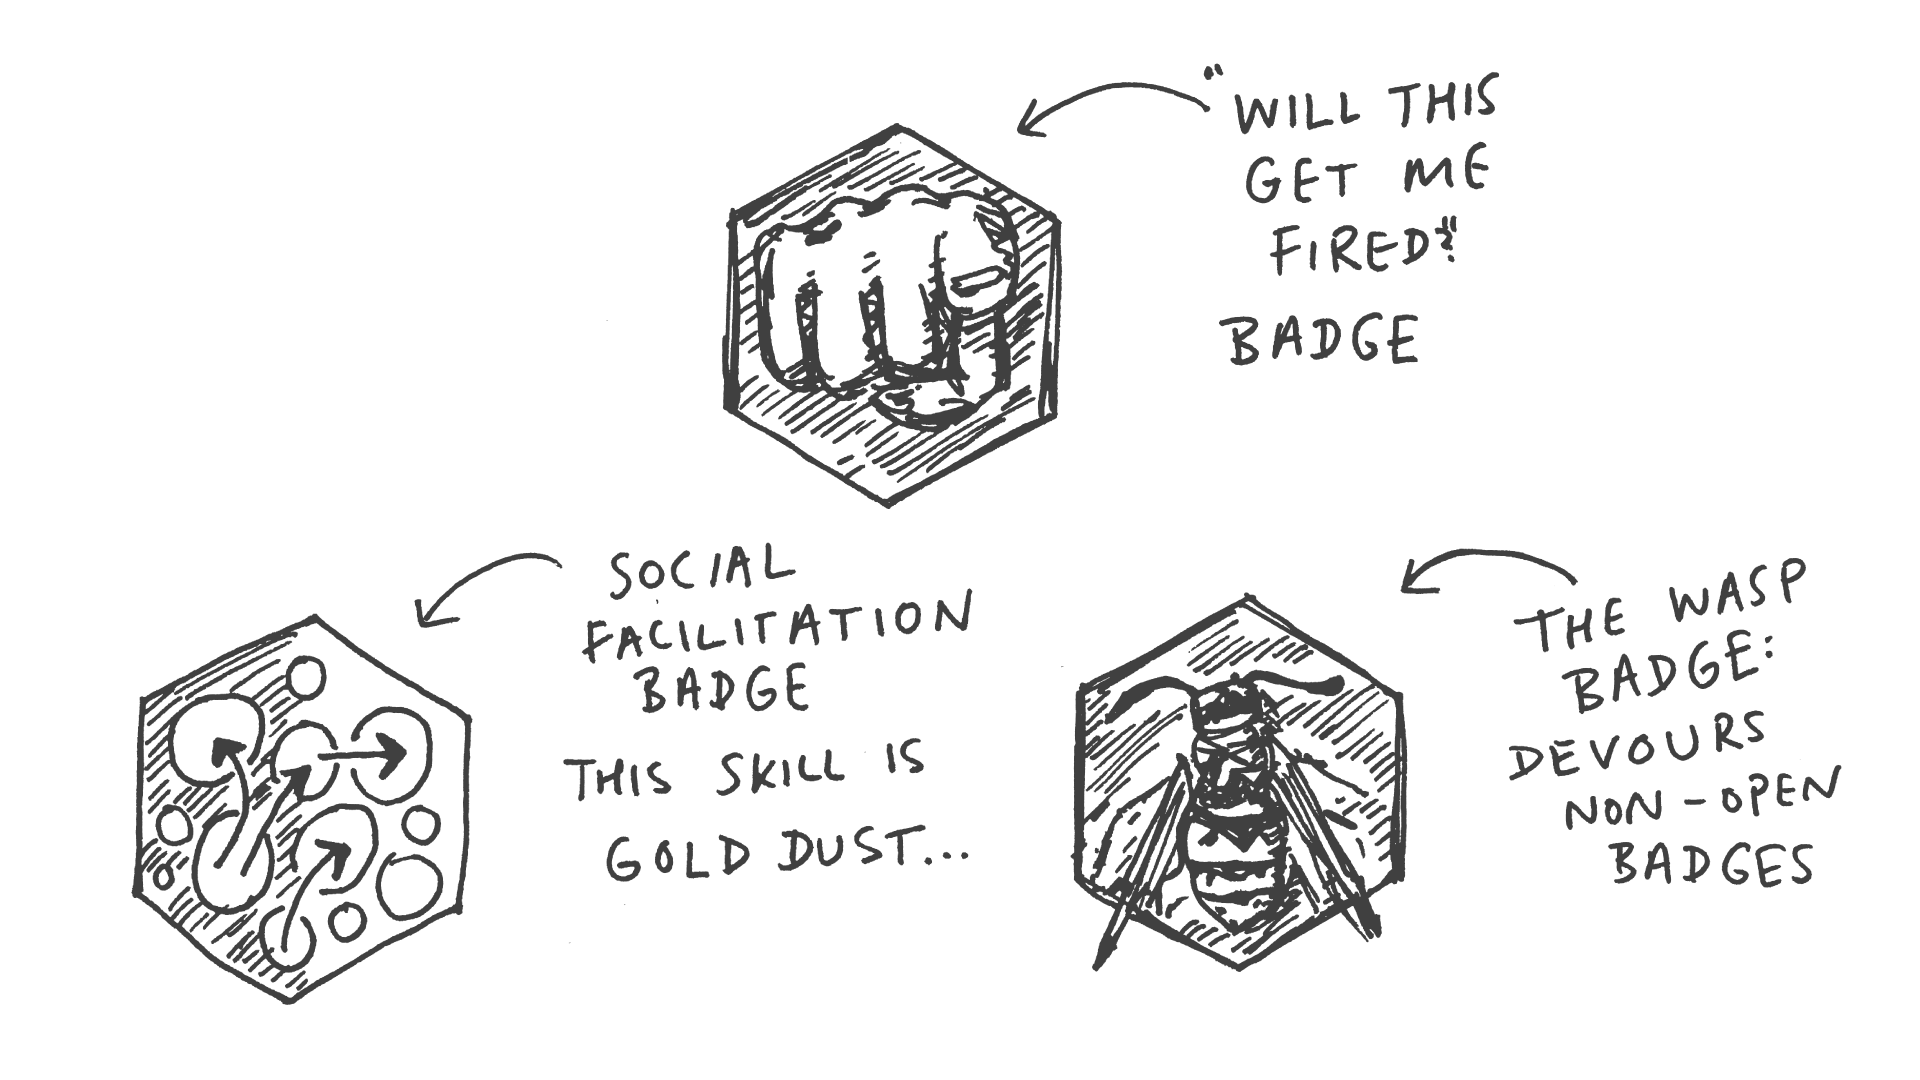 Open Badges from Dialogue